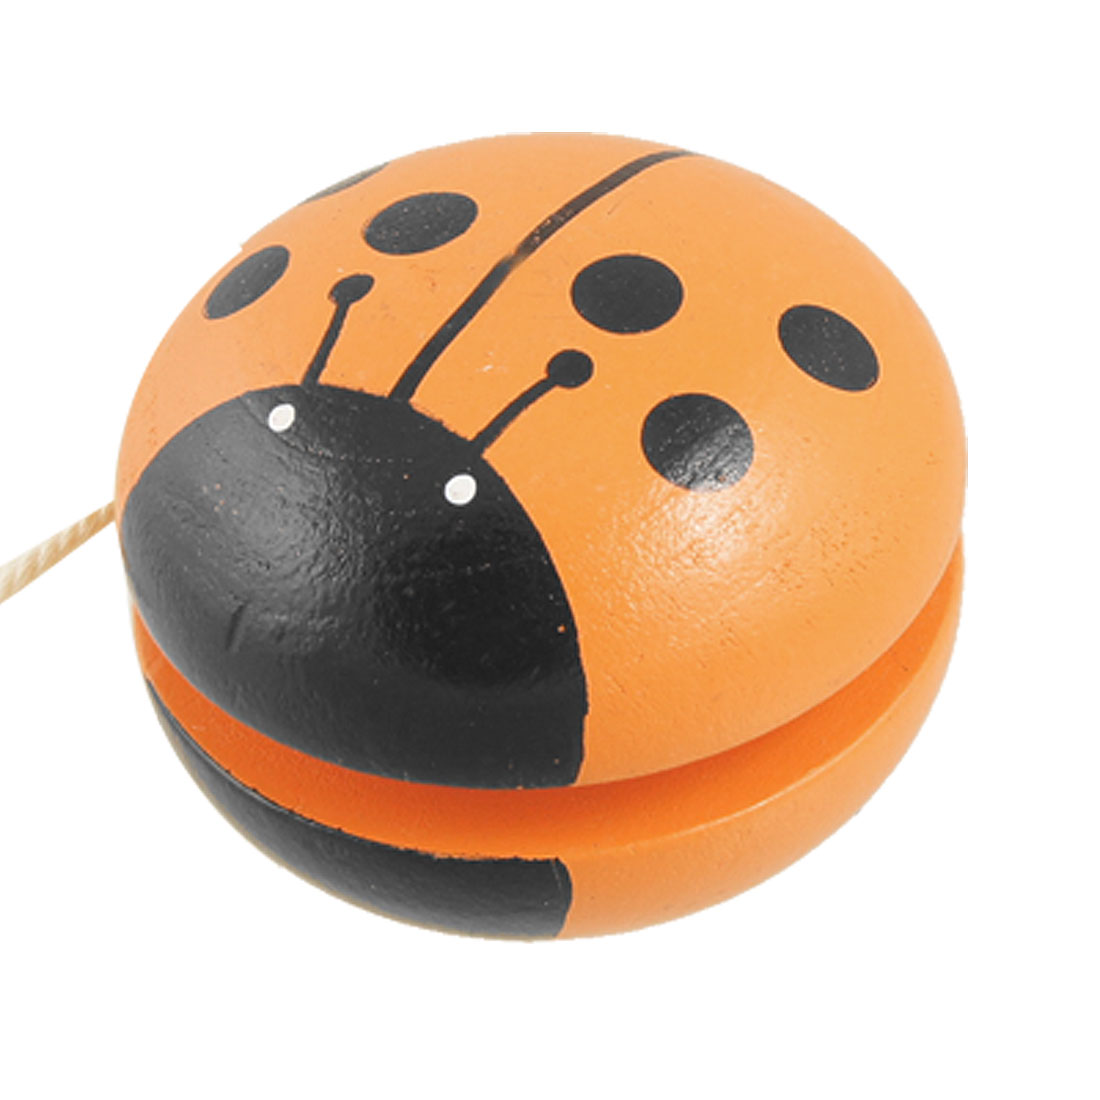 Children Wooden Yo-Yo Toy Gift with Ladybird Design